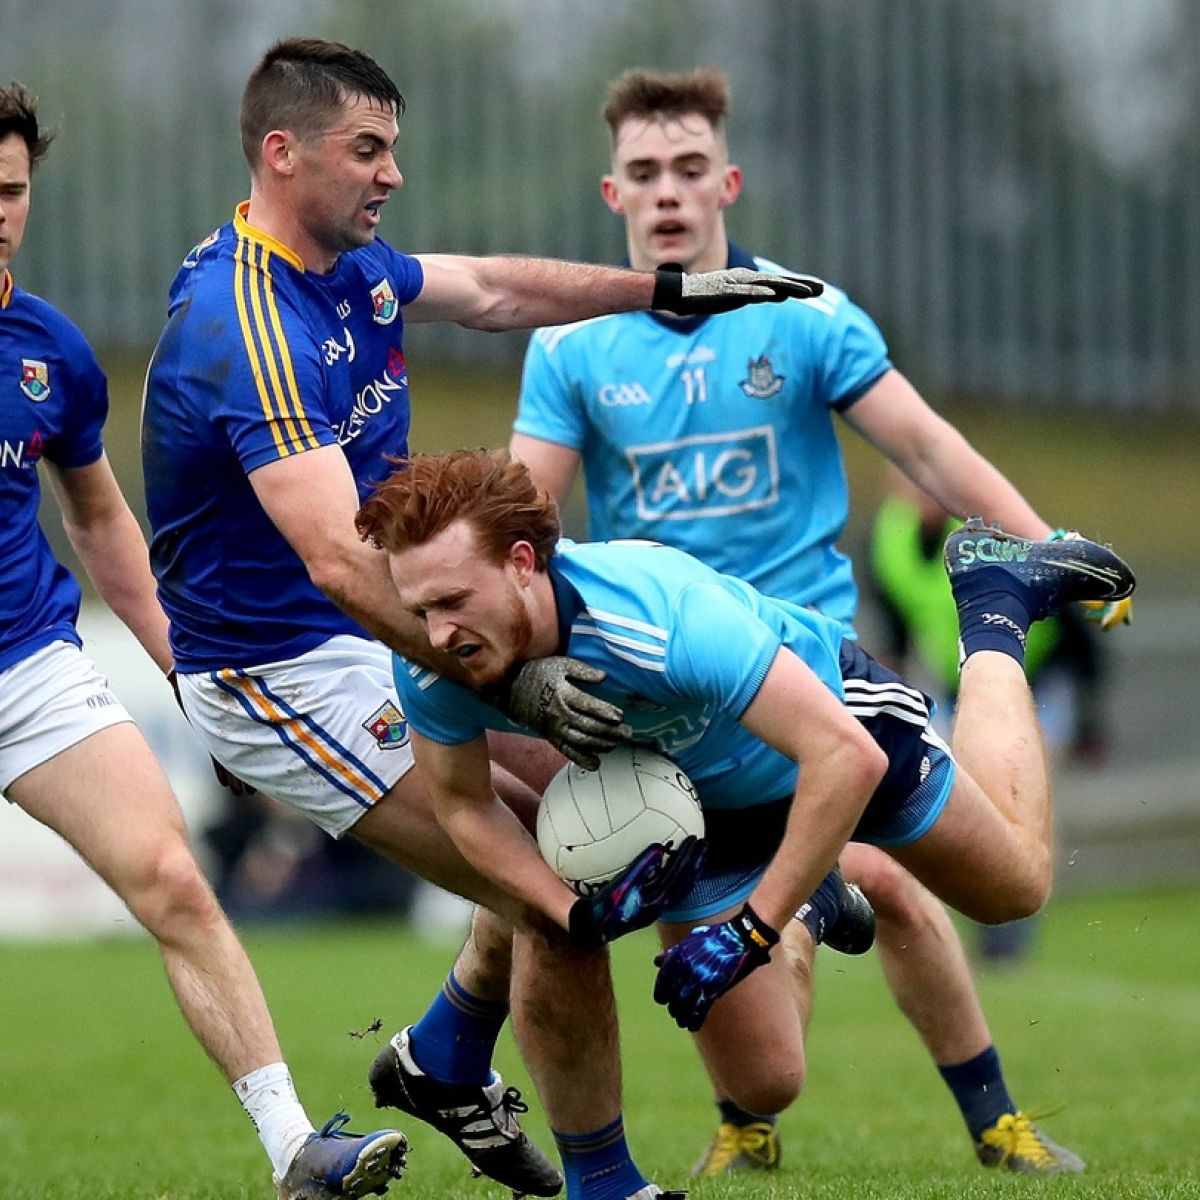 Longford thrash Offaly in Division Three opener - The Irish Times